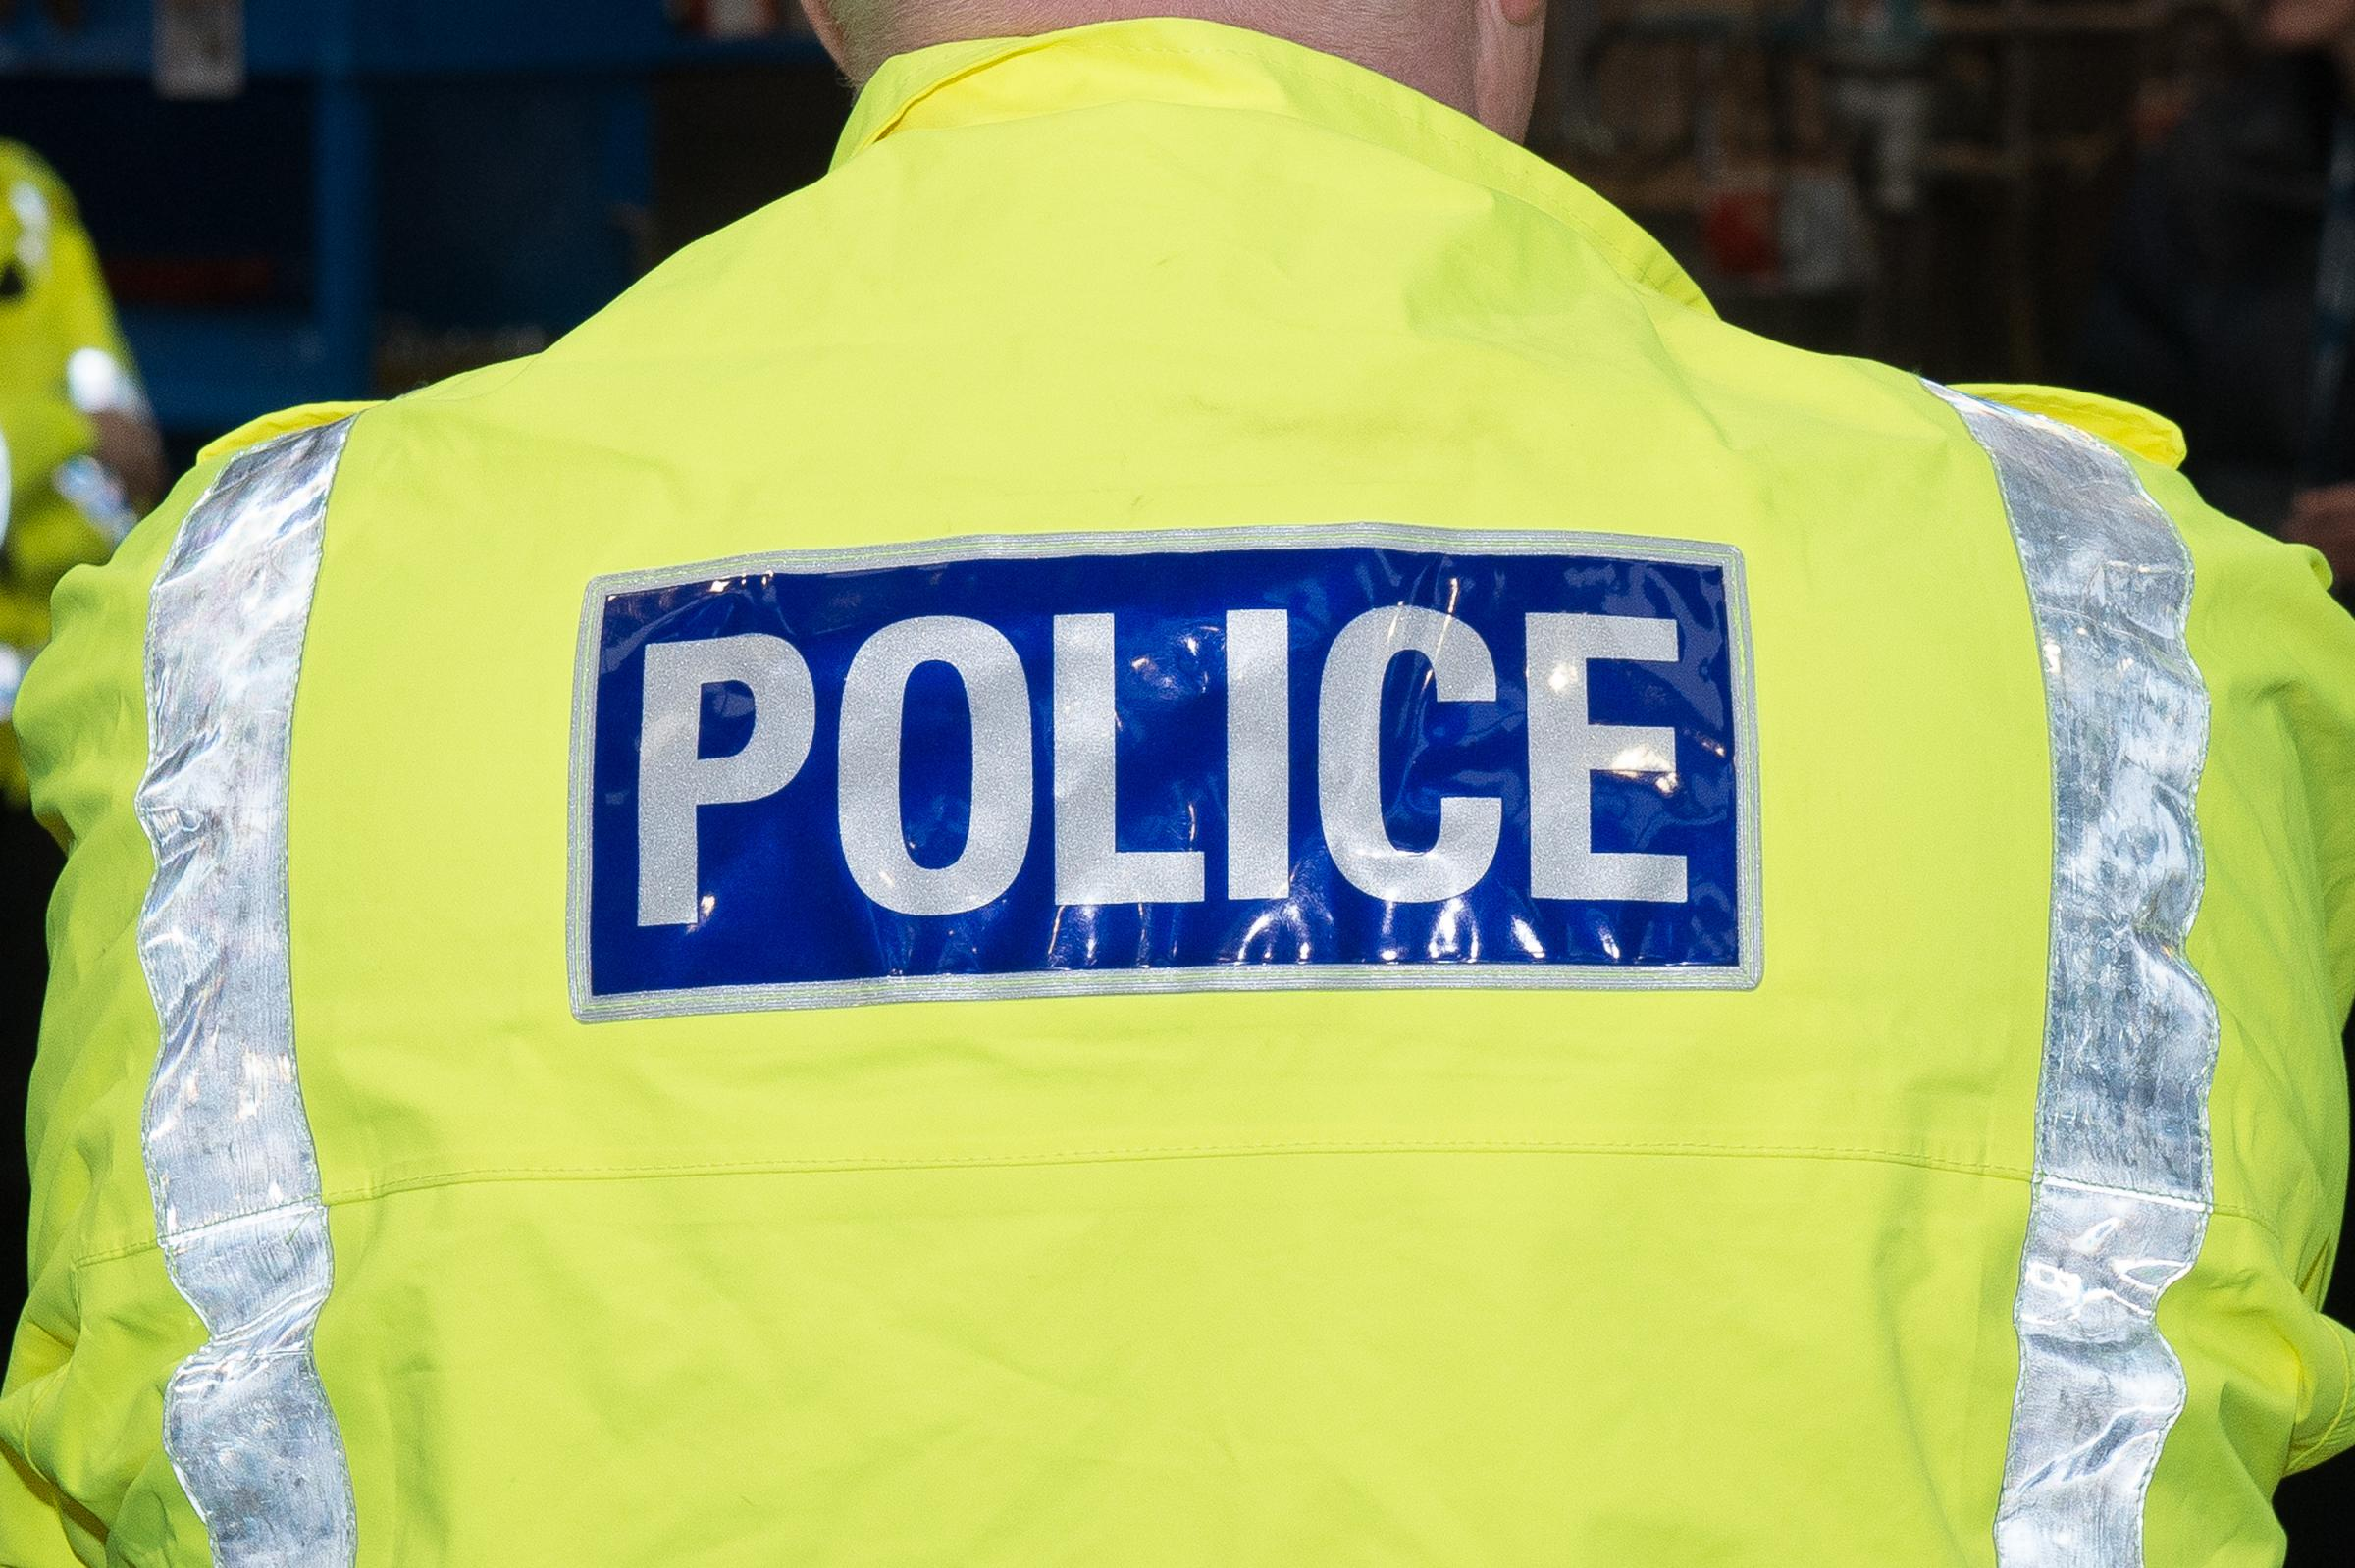 Concerns raised over plans to scrap council-funded police officers